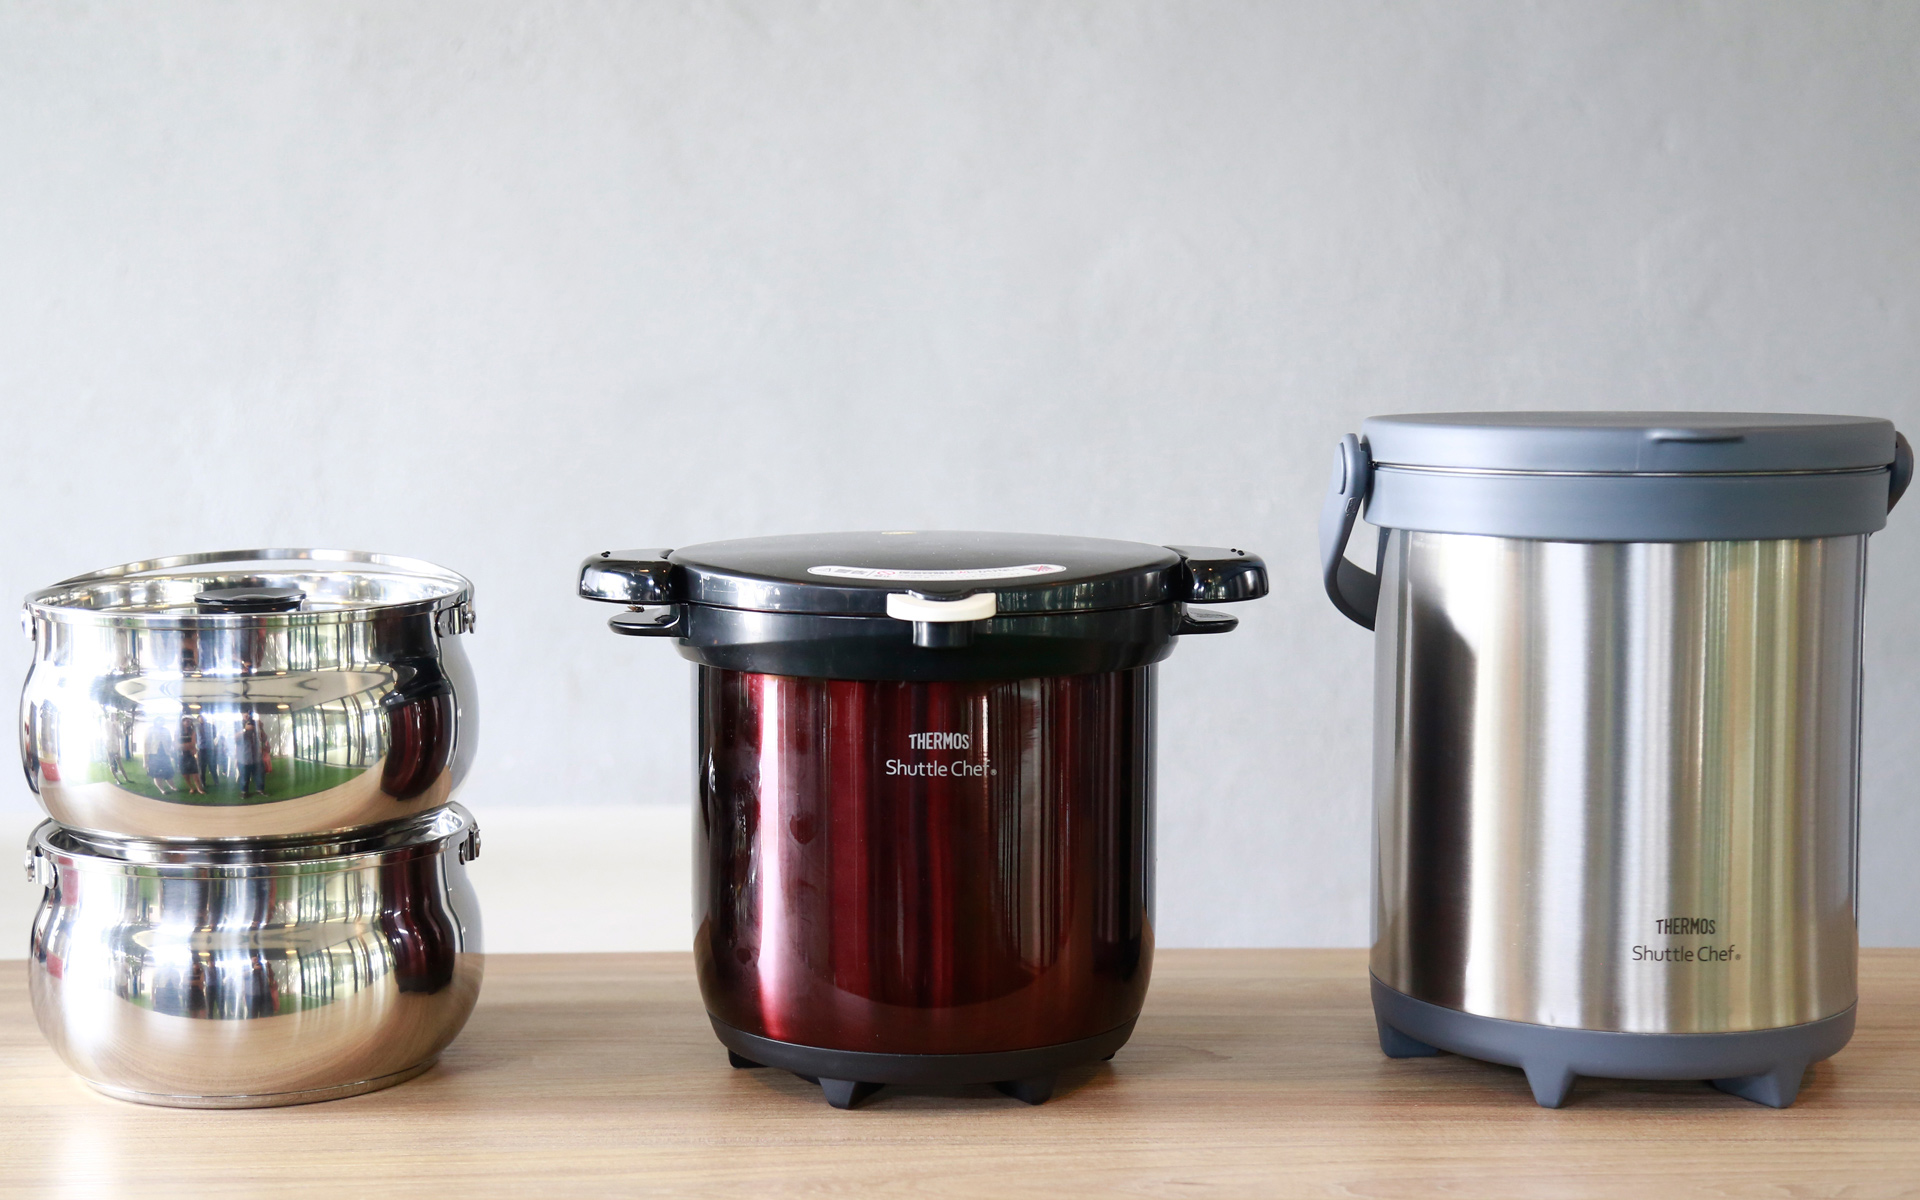 The Thermos Shuttle Chef series which proves to be great kitchen helpers